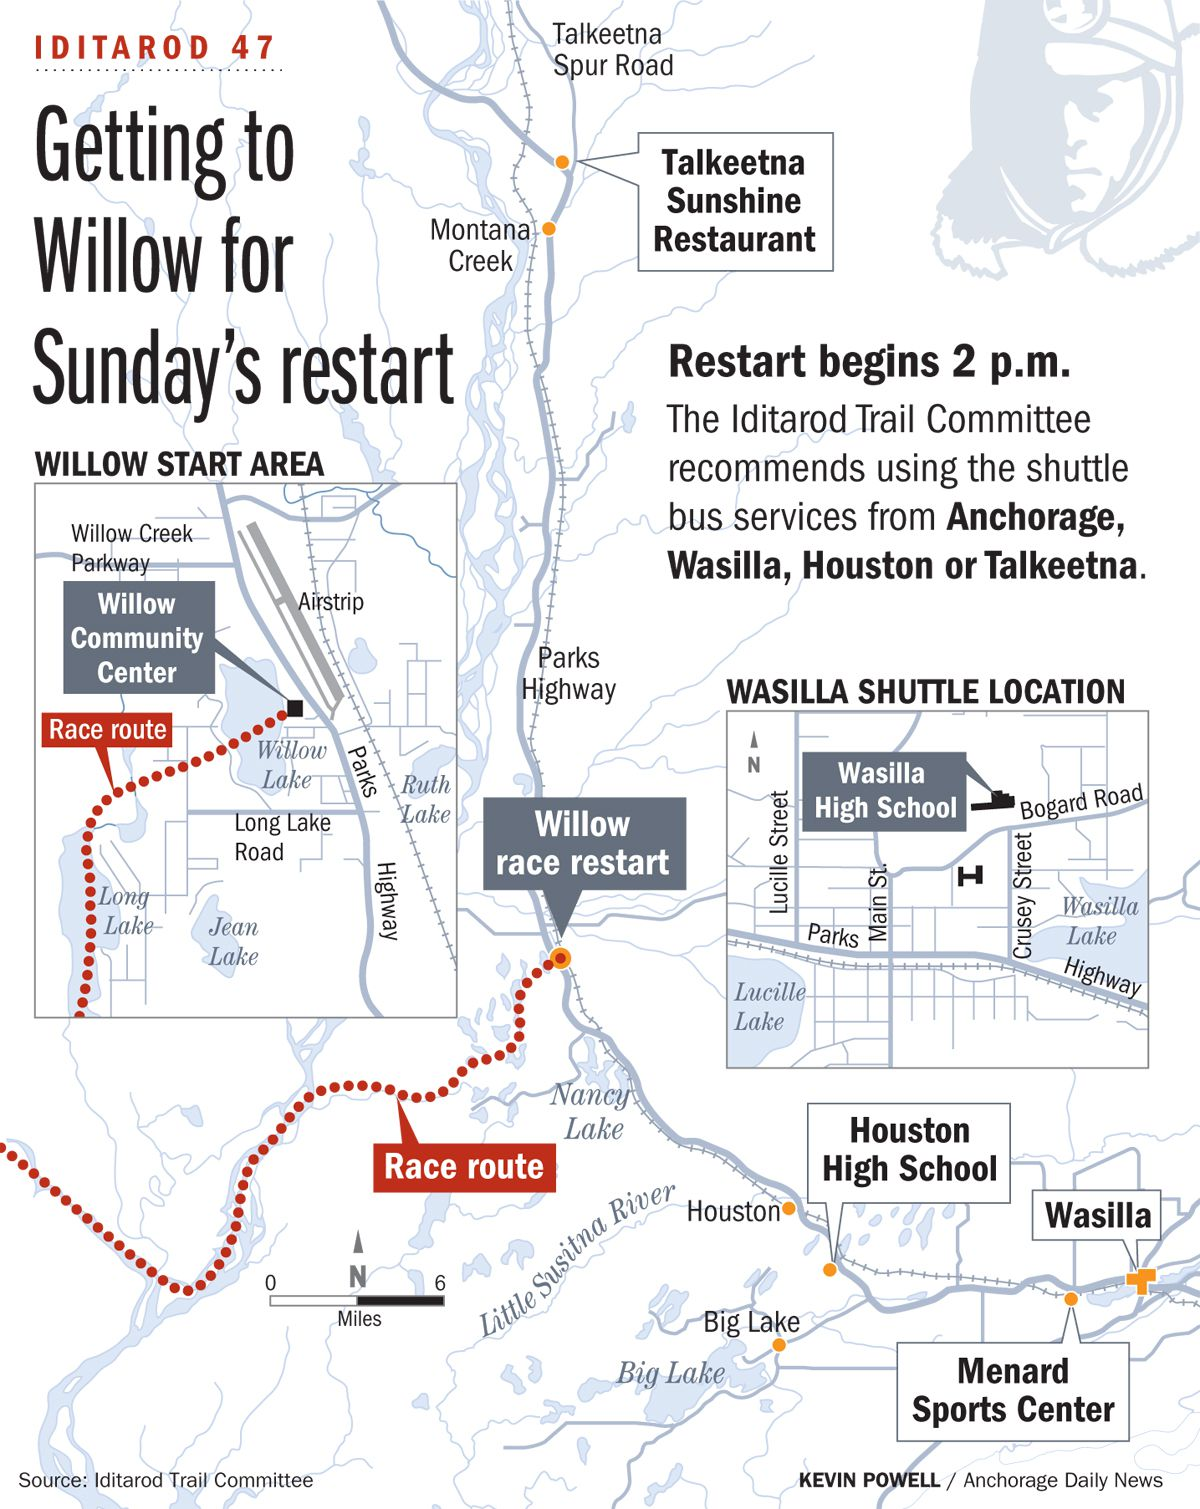 Getting to Willow for Sunday's Iditarod restart